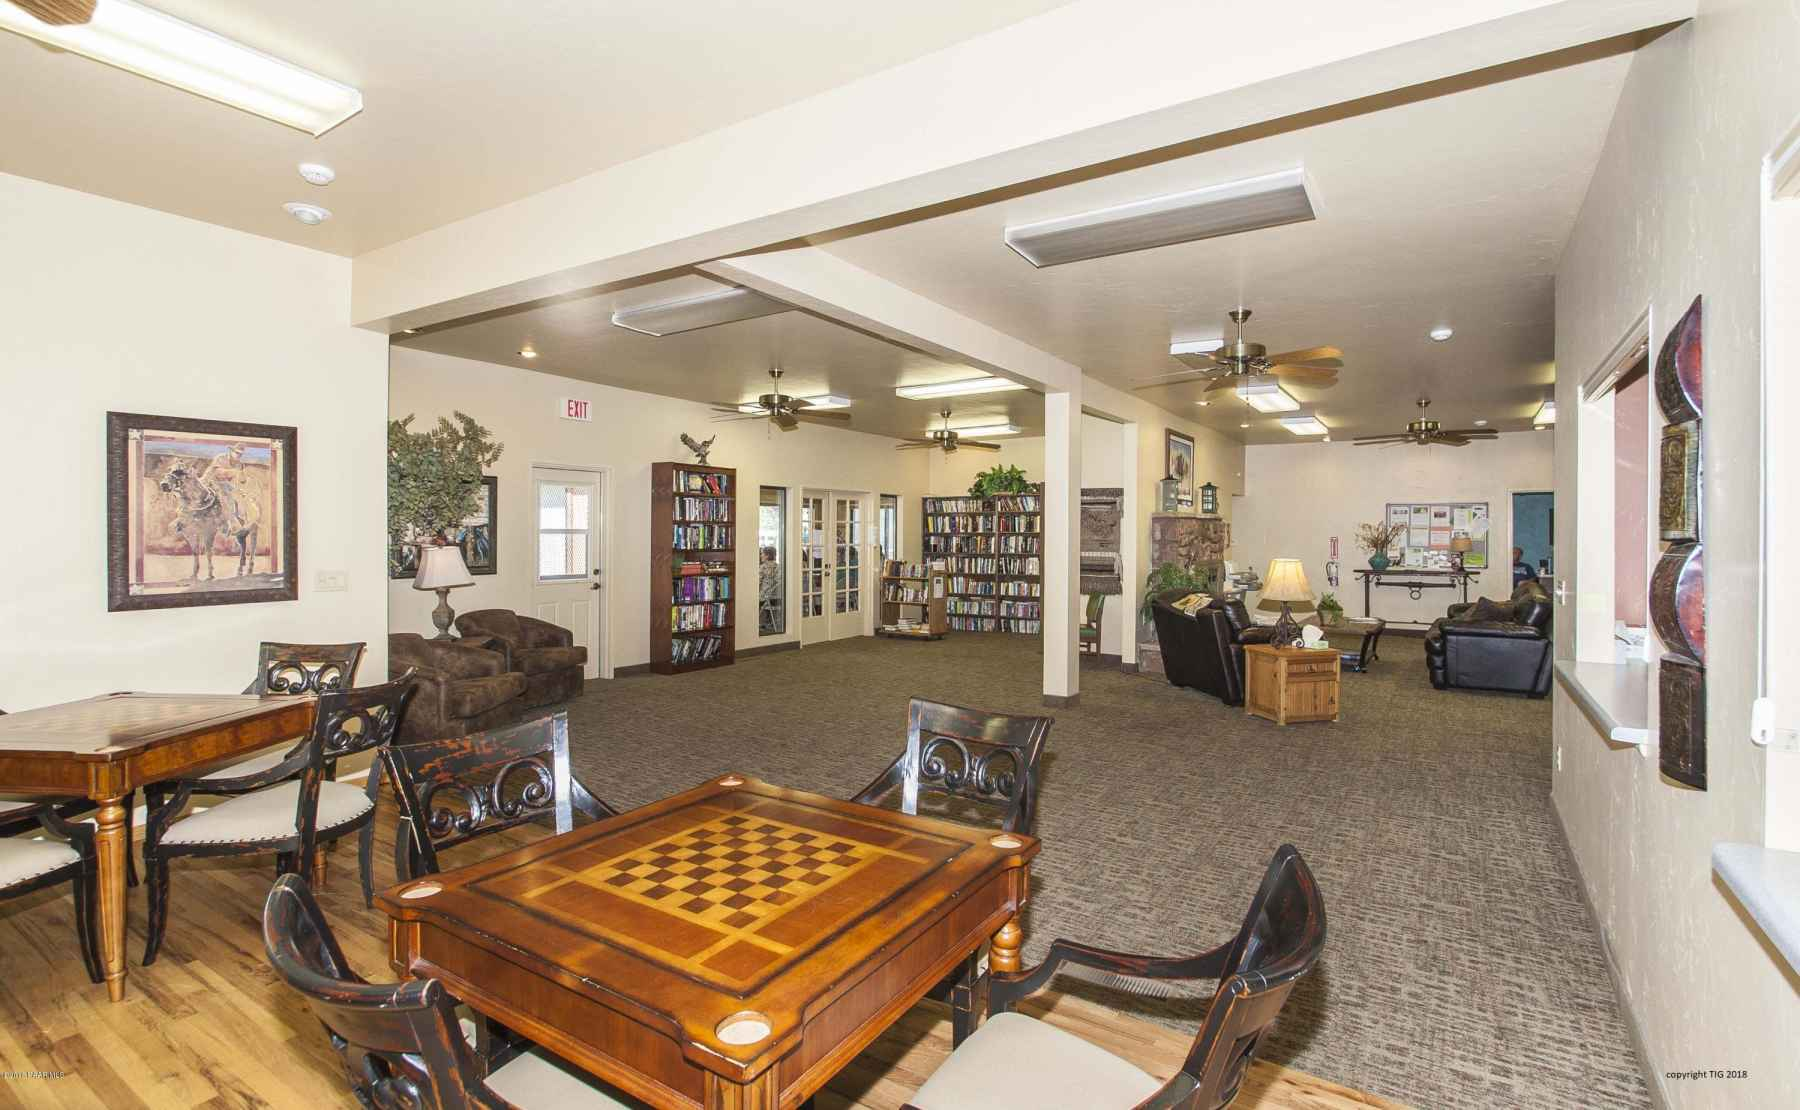 Clubhouse Game Room, lobby, library - co